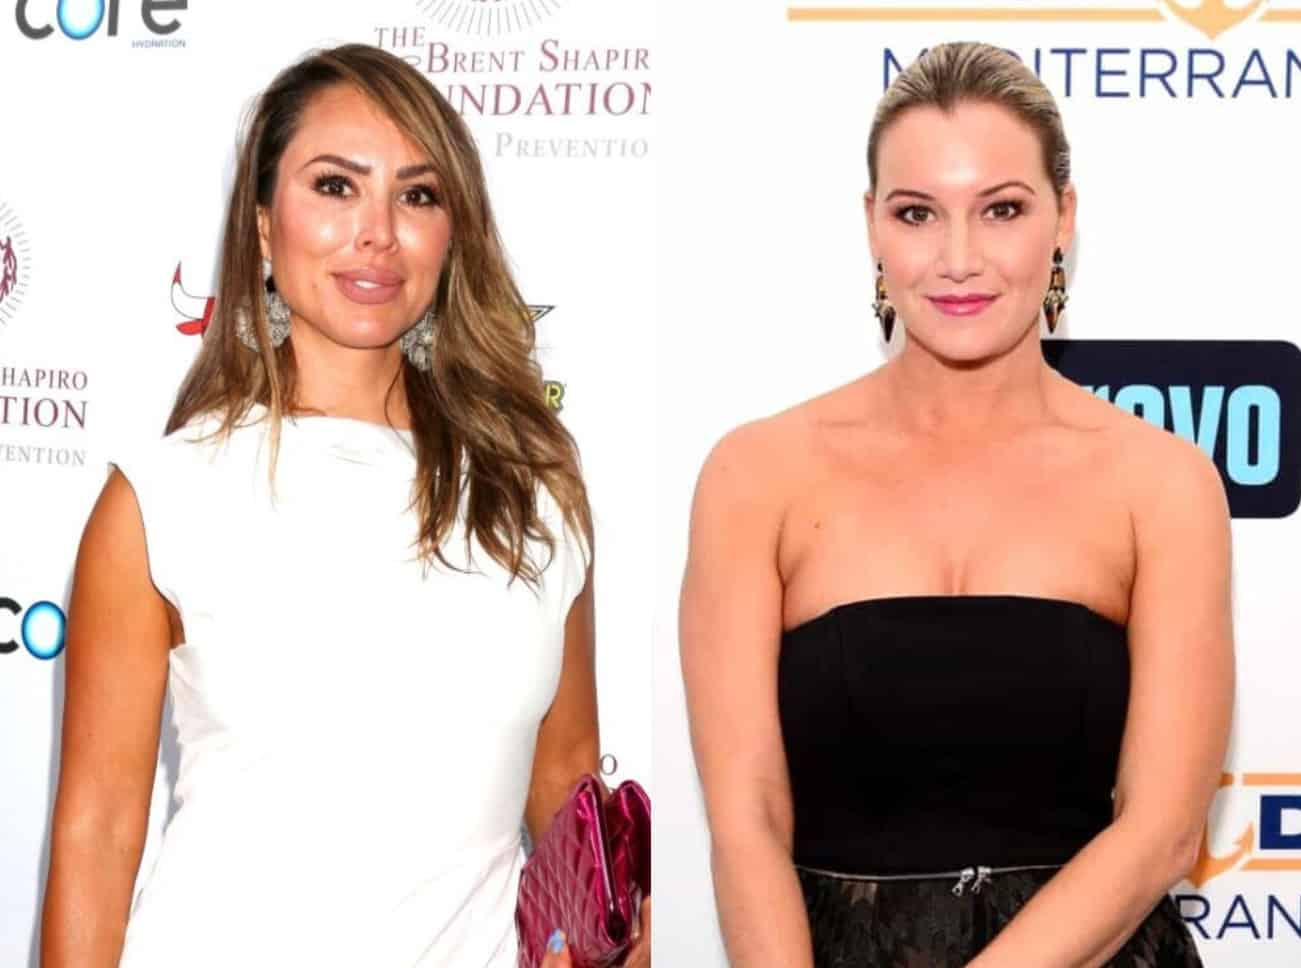 RHOC Alum Kelly Dodd Reacts to Hannah Ferrier Diss, Says She's Making More Money From New Business Venture Than She Did on Show